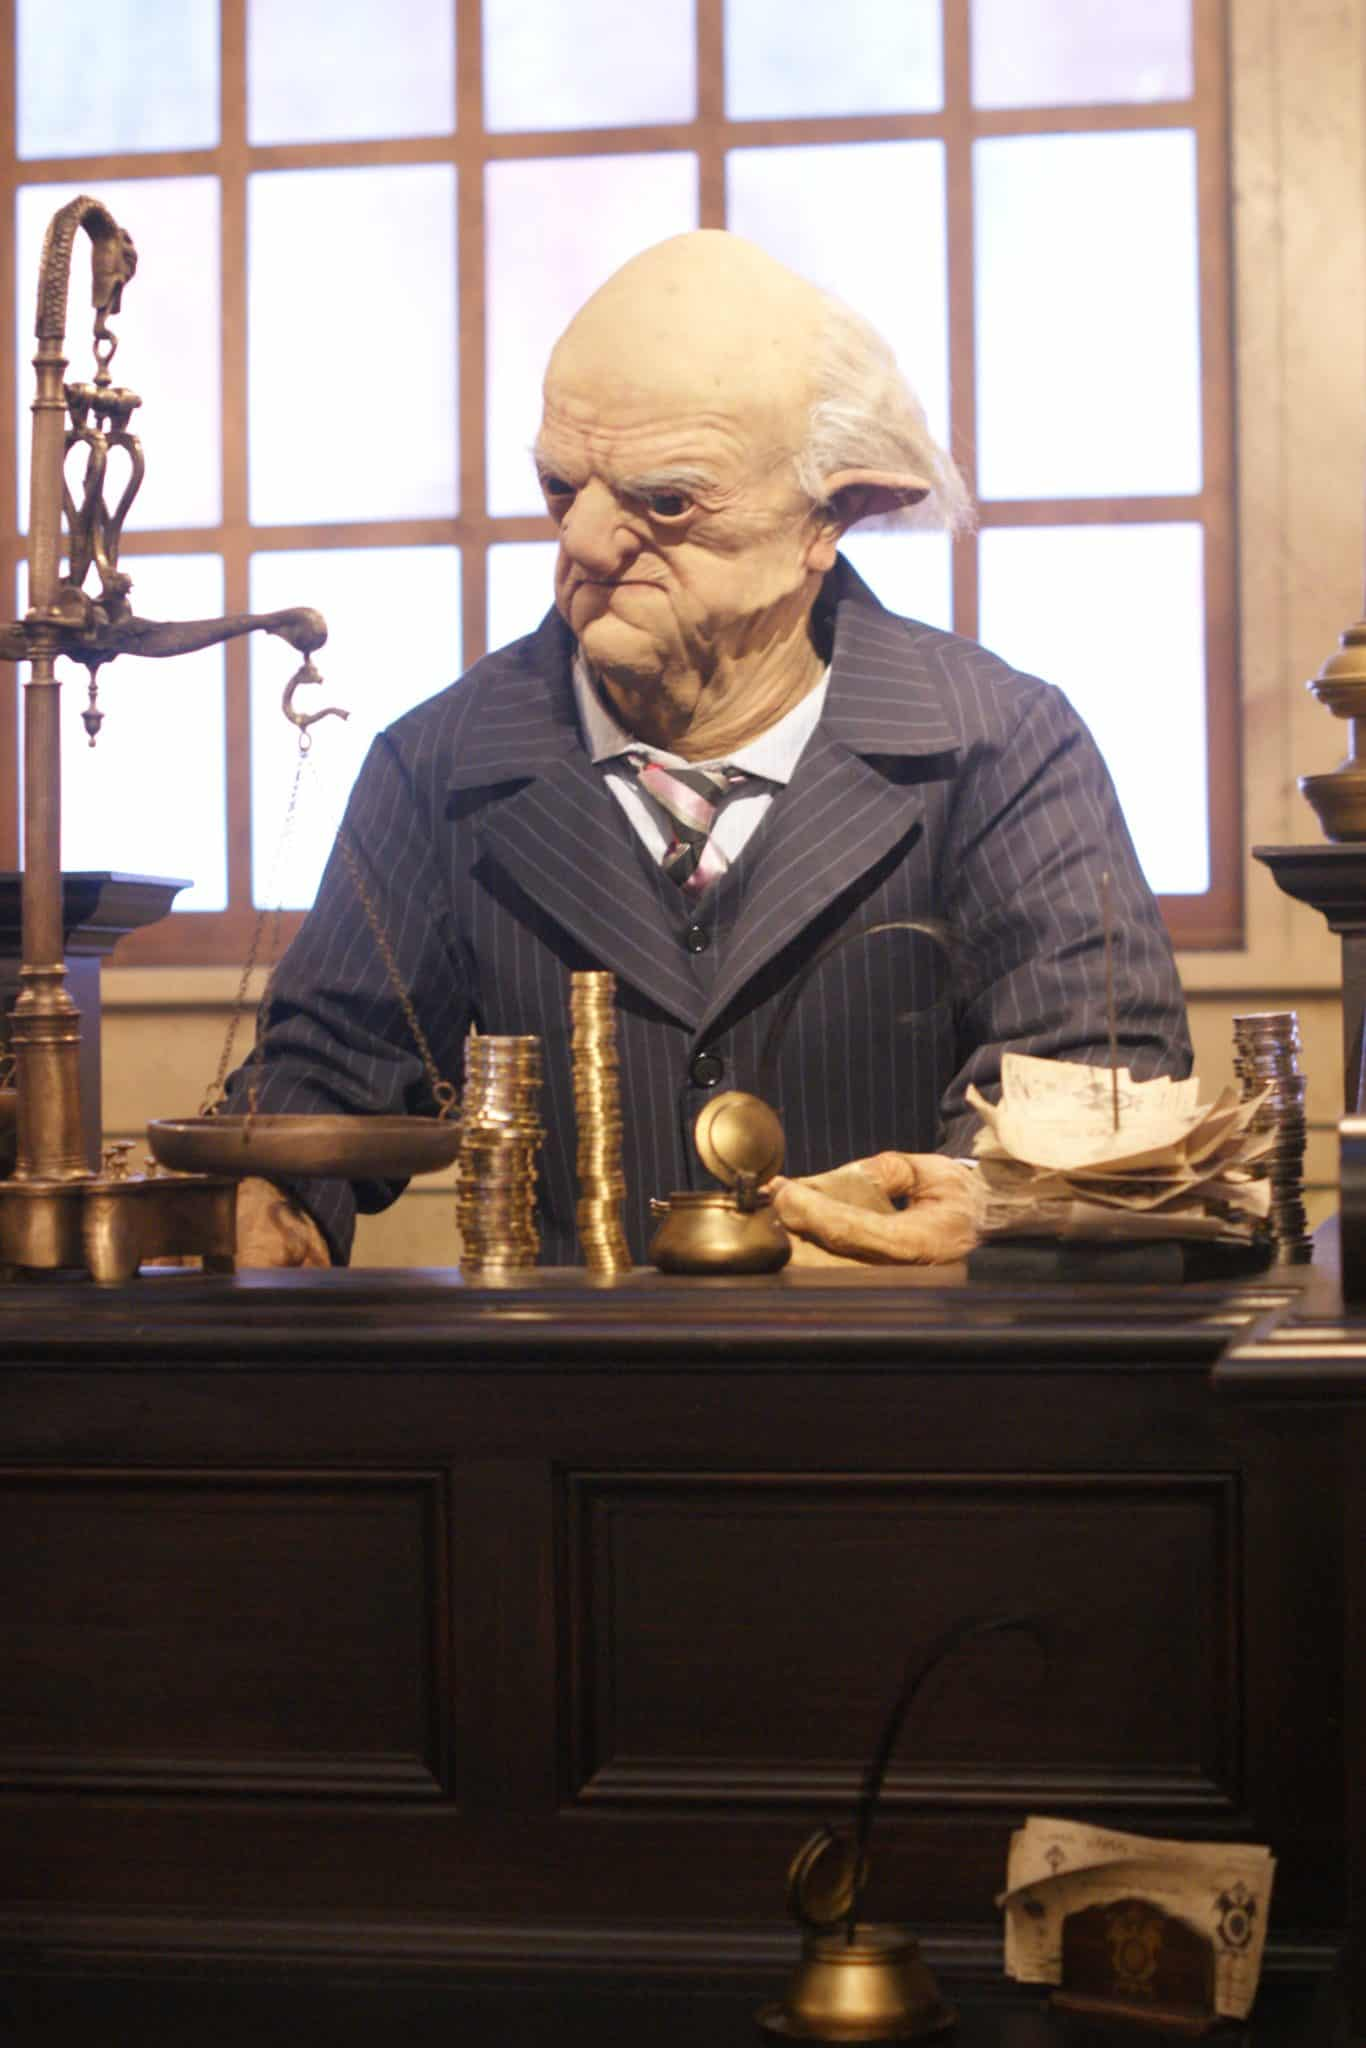 Diagon Alley Goblin in Gringotts Bank -10 Things I didn't know about Universal Studios Orlando - Tips for visiting Universal Studios Orlando and enjoying Diagon Alley - #UniversalStudios #DiagonAlley #Travel #Florida #orlando #Universal